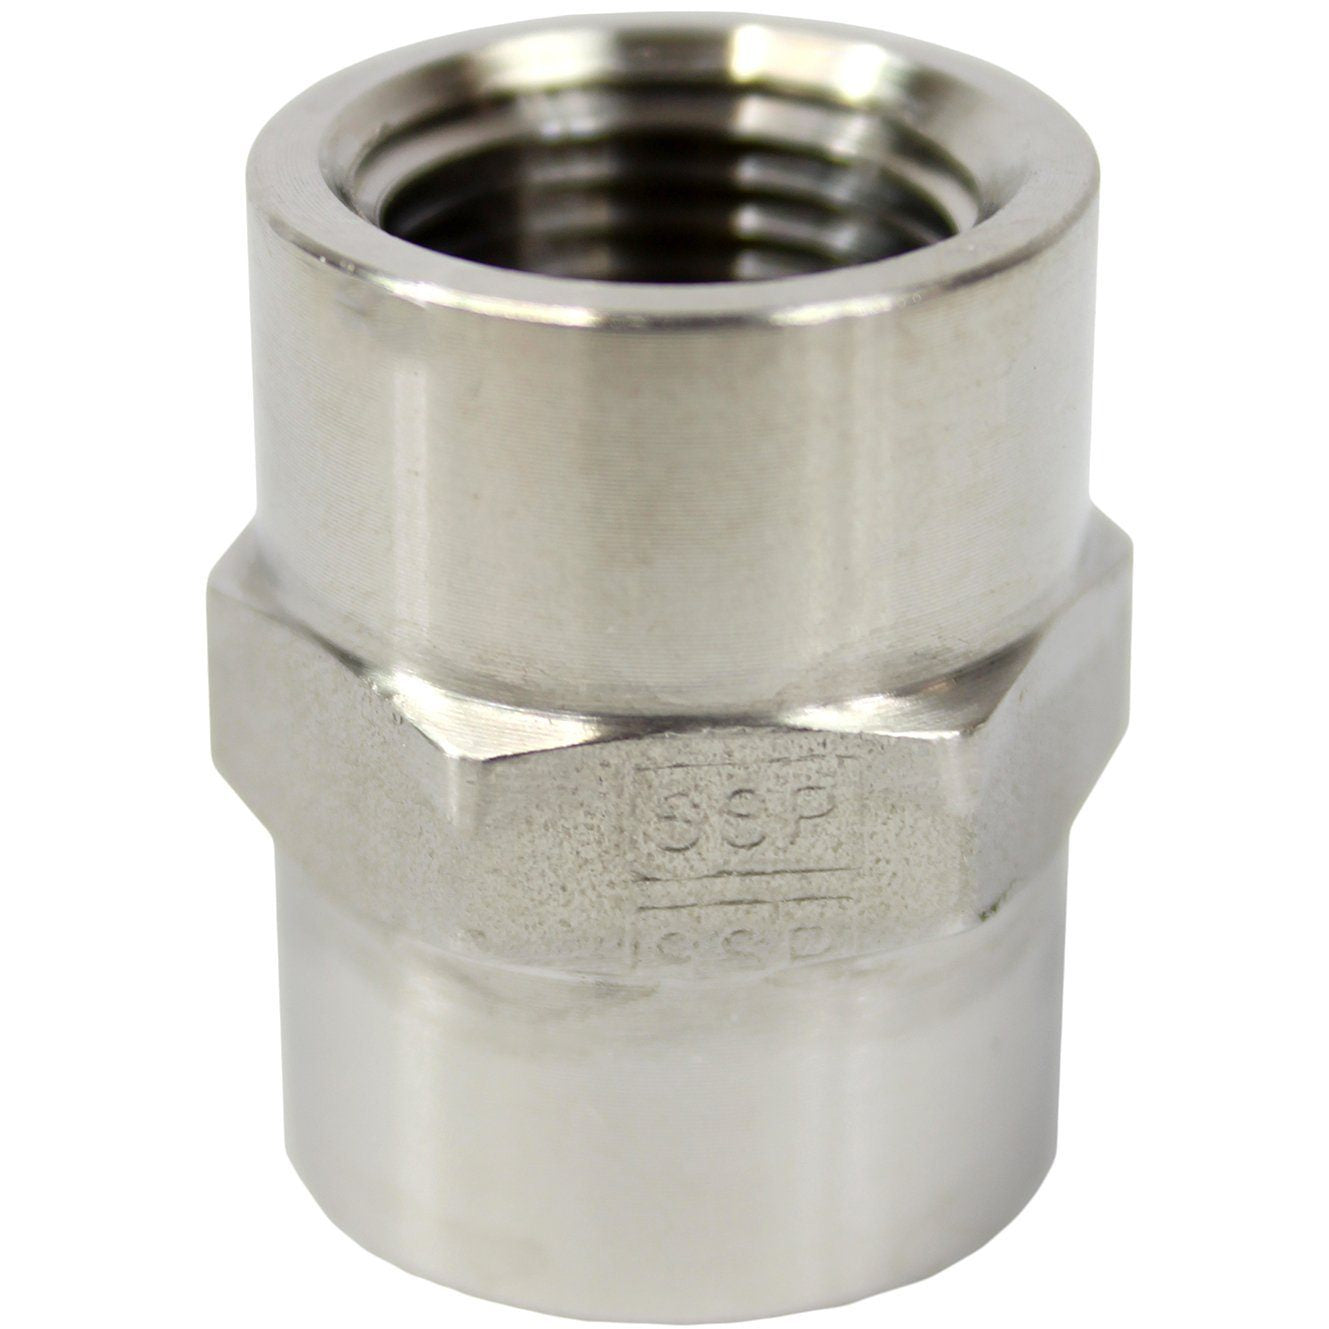 SSP - Hex Coupling Shop All Categories SSP Corporation